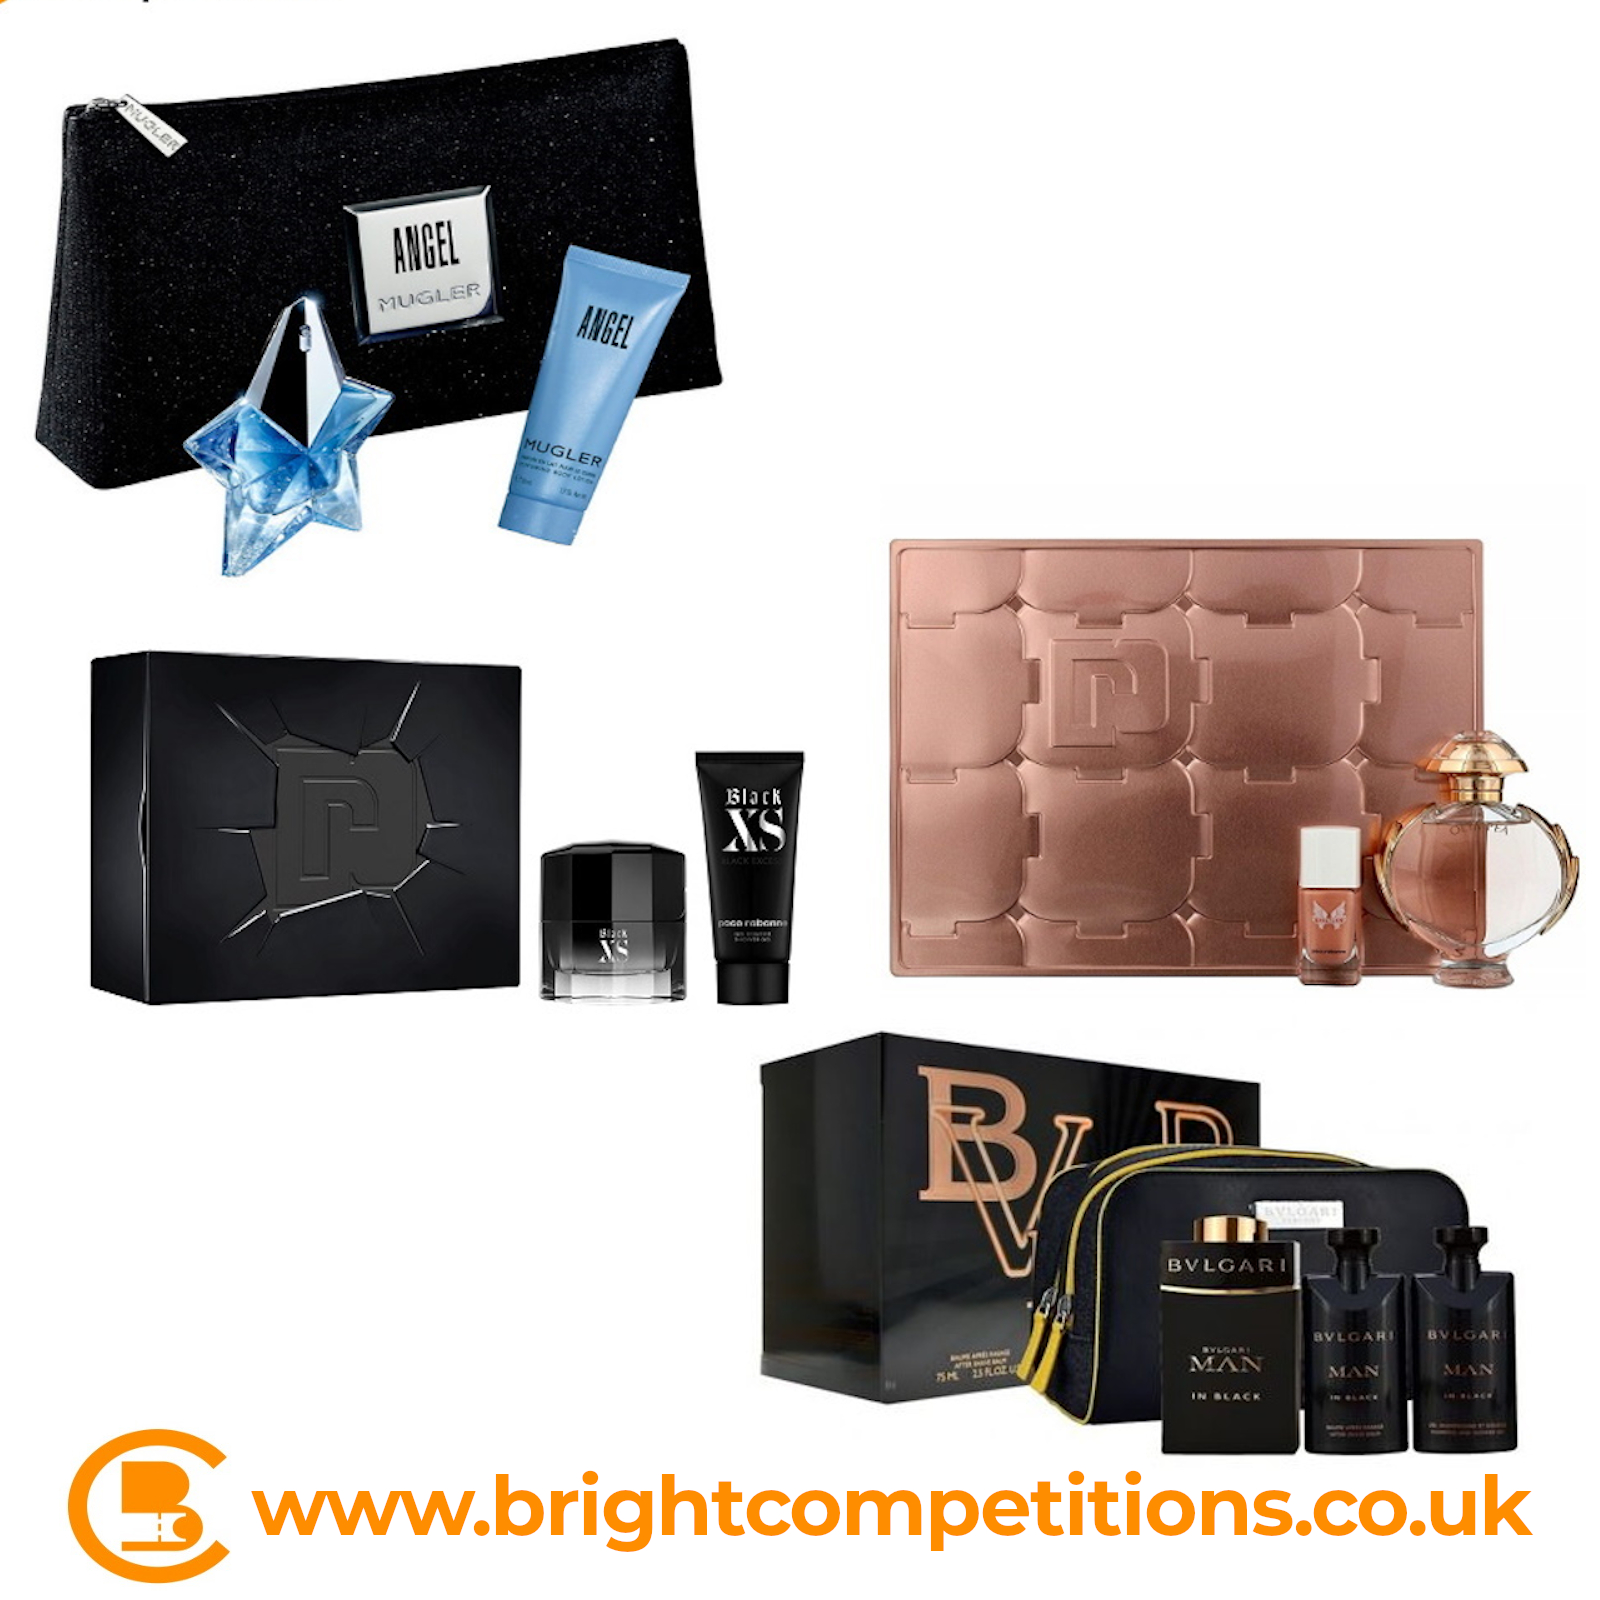 Win a Fragrance Gift Set Bundle – Perfect for Valentines – Draw Saturday 1st Feb 8pm Regardless